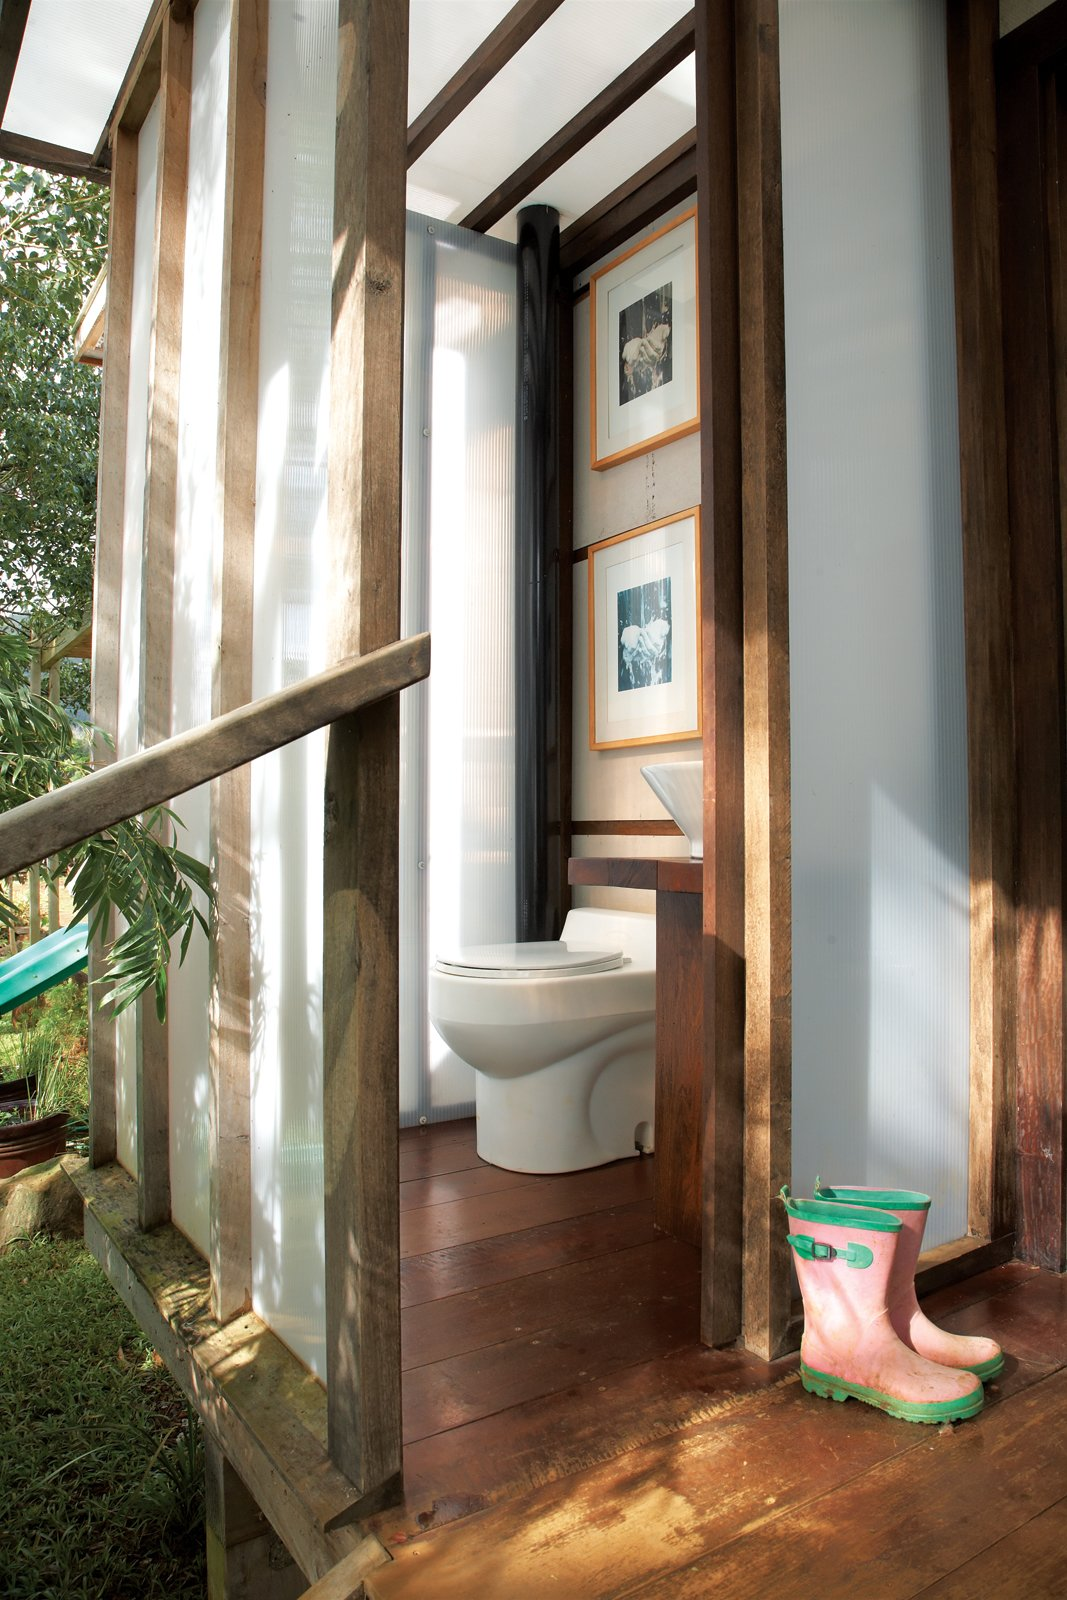 Nearby, the bathroom includes a composting toilet and a Home Depot sink on a pedestal Chris made from chunks of found wood.